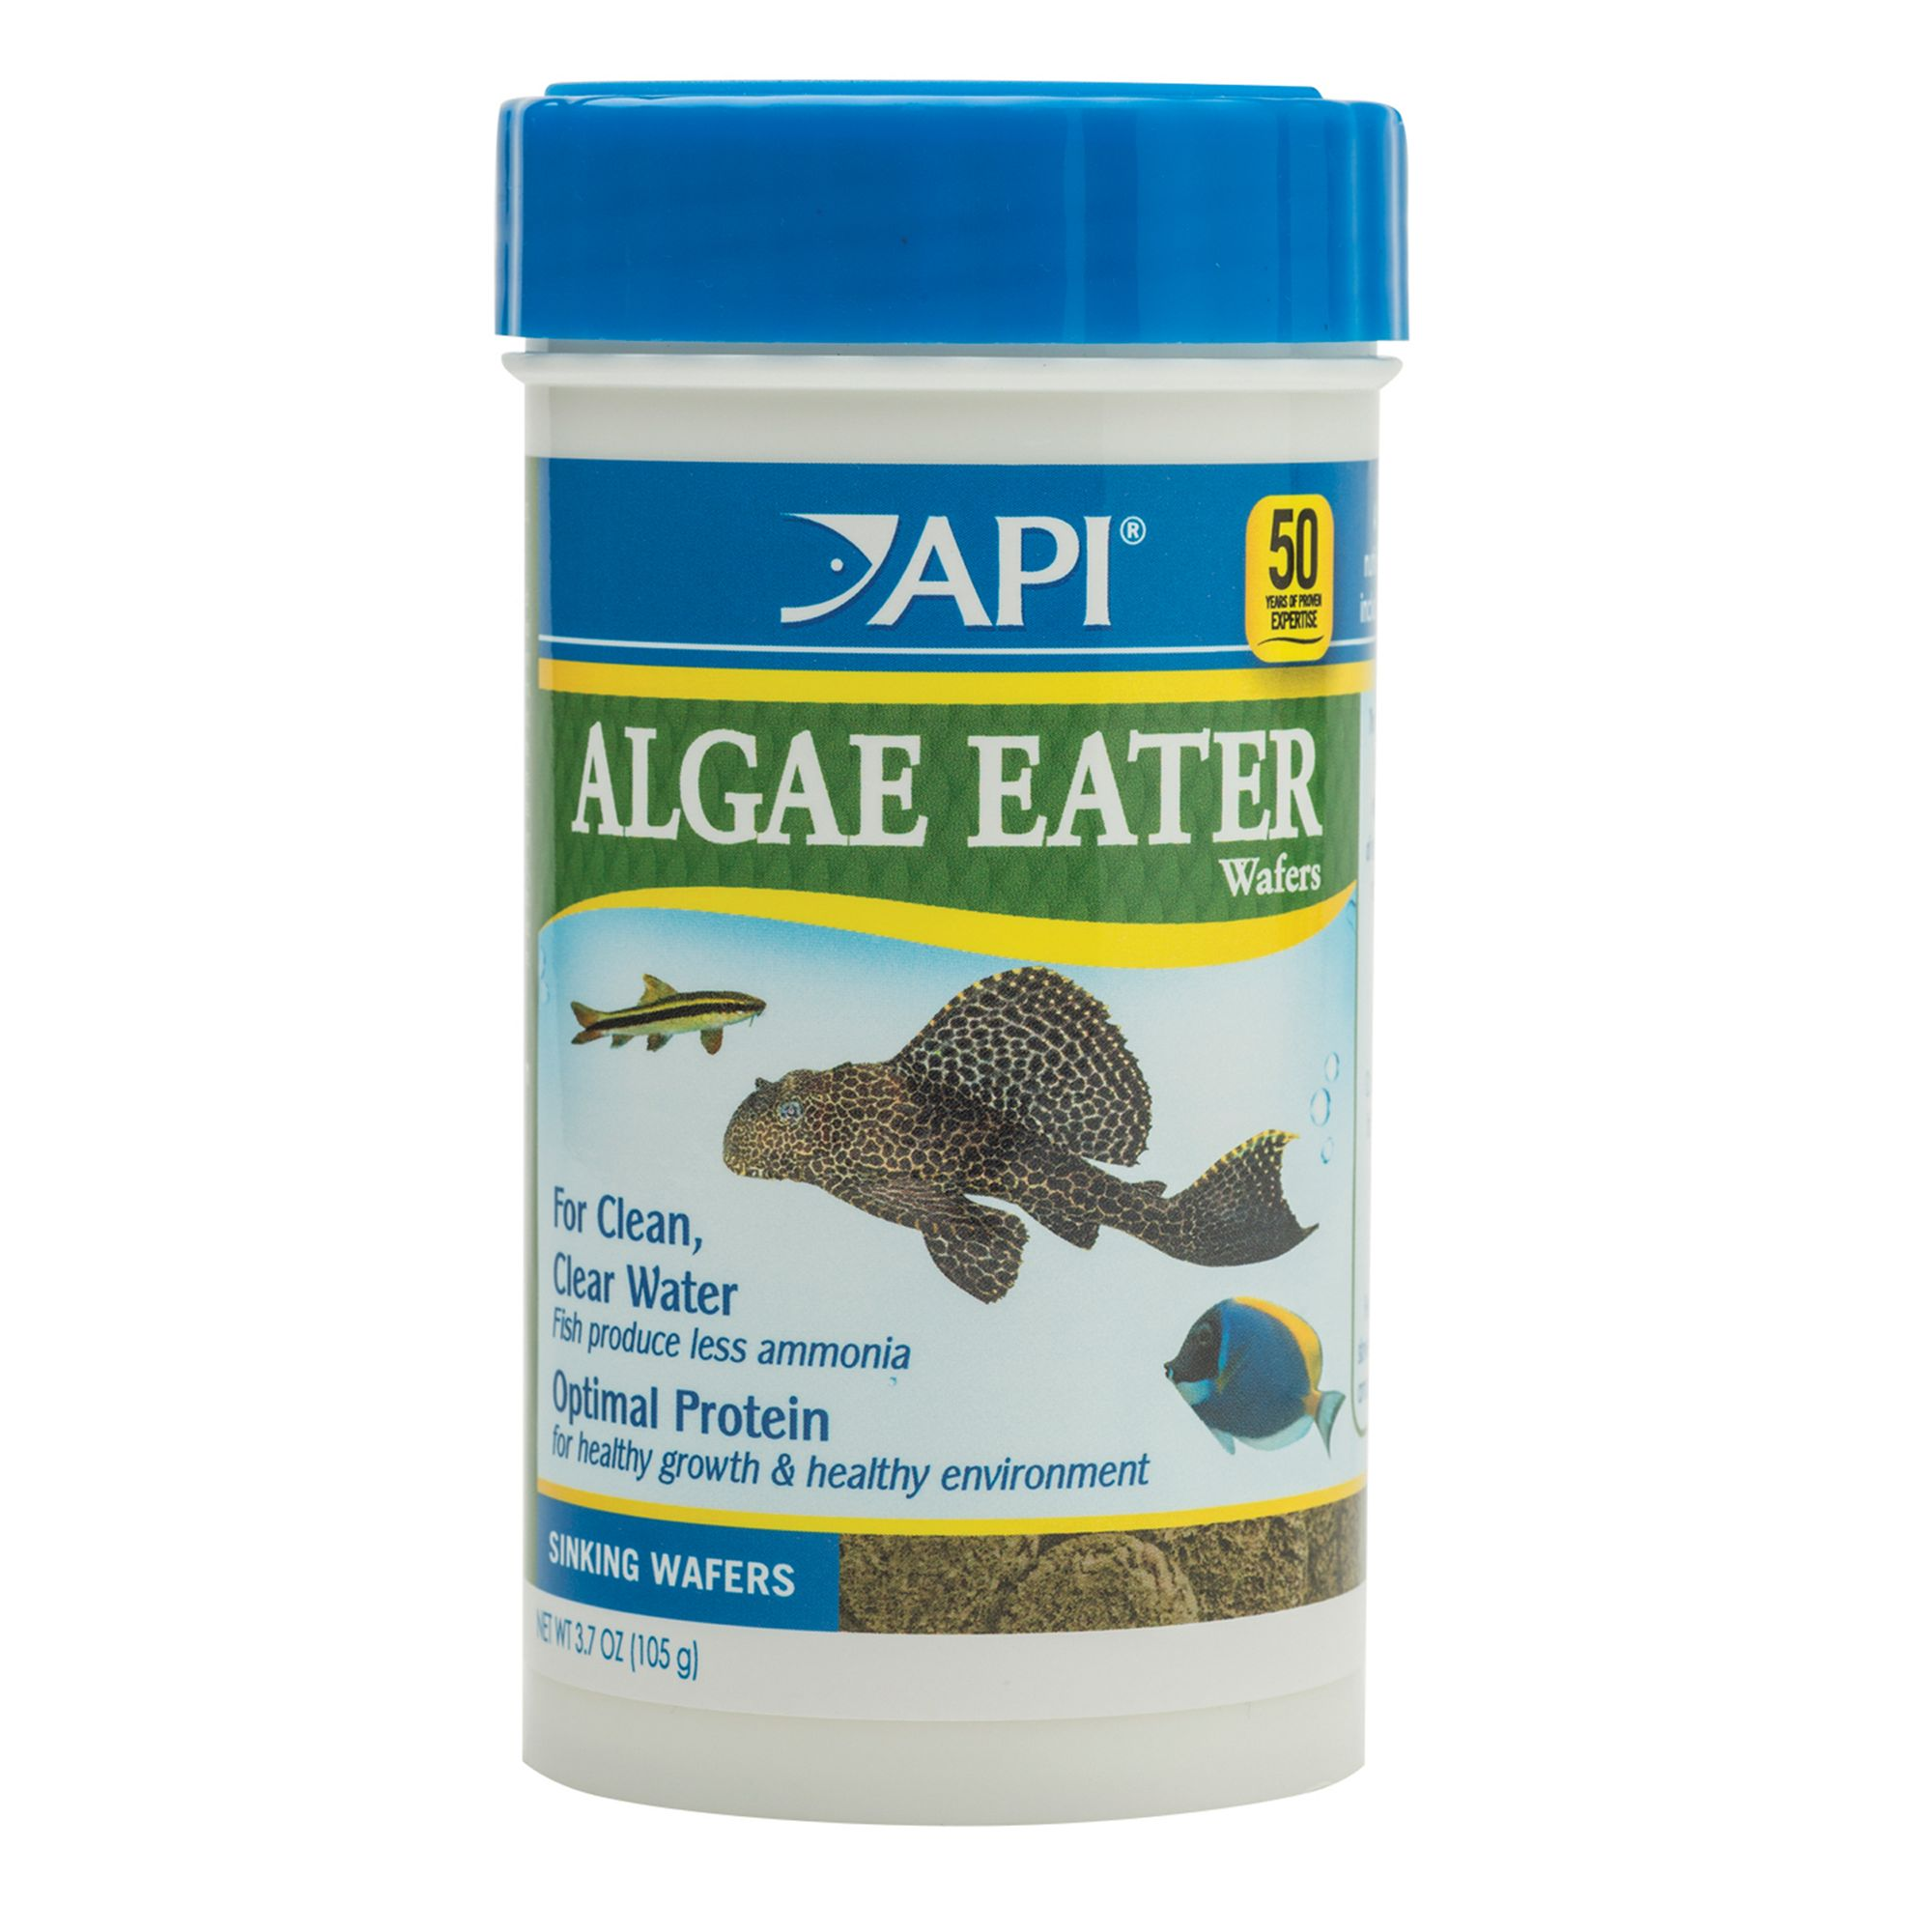 Api Algae Eater Premium Algae Wafers Fish Food Size 3.7 Oz